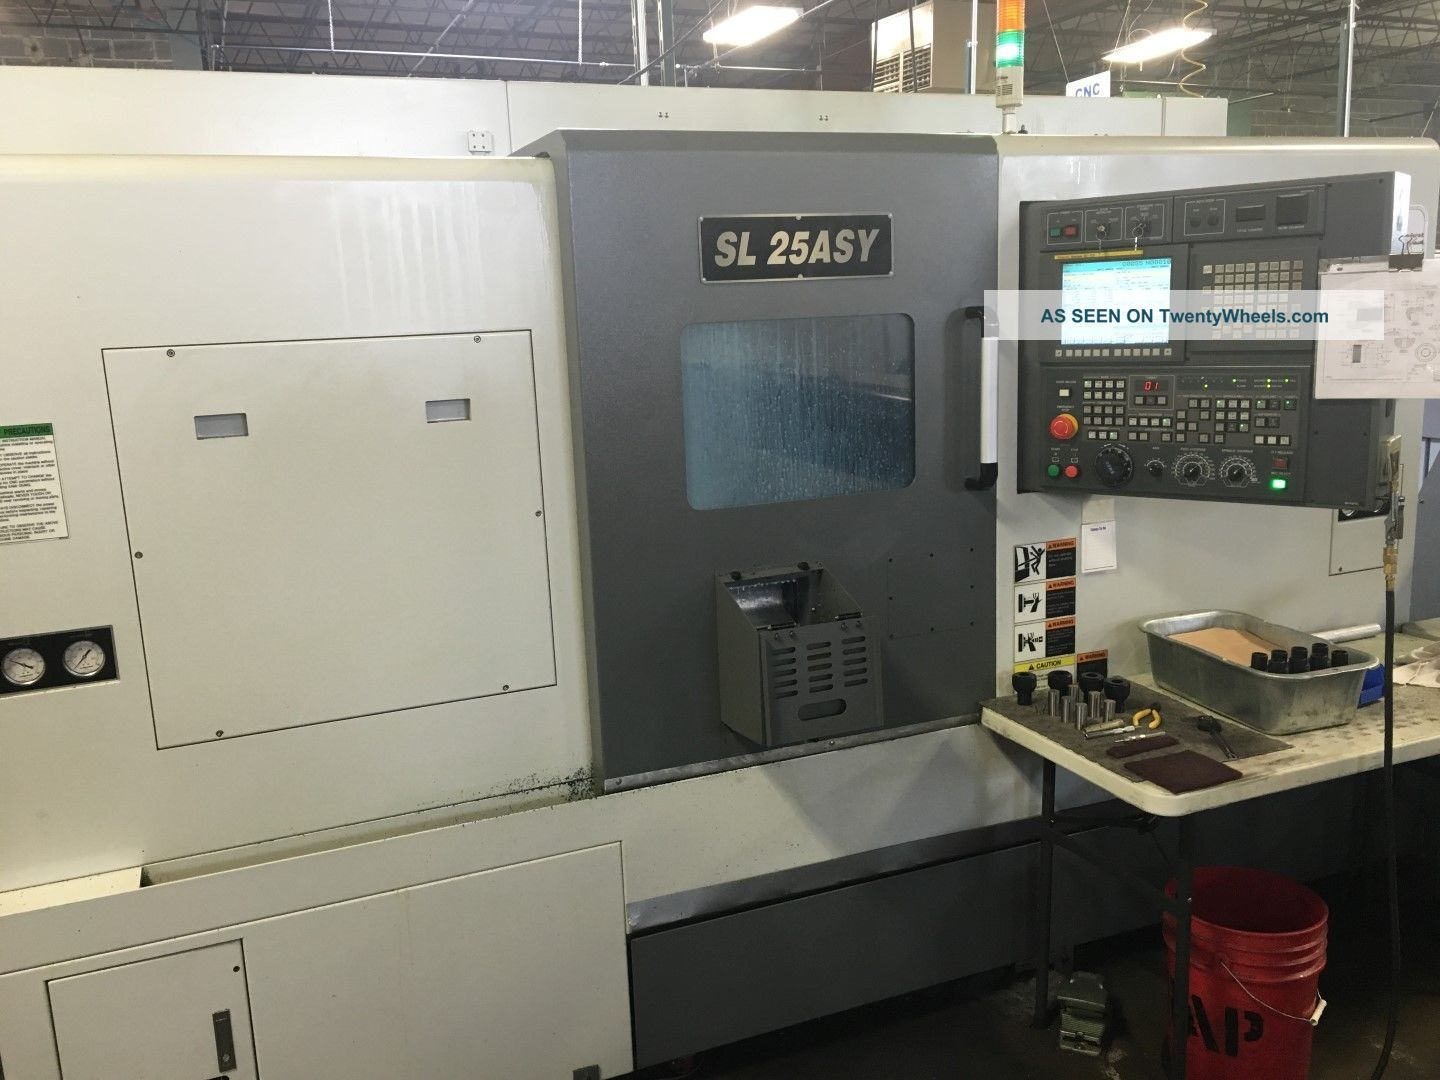 Samsung Sl - 25 Asy Cnc Live Tool Turning Center Lathe Fanuc Sub Y Axis ' 13 Metalworking Lathes photo